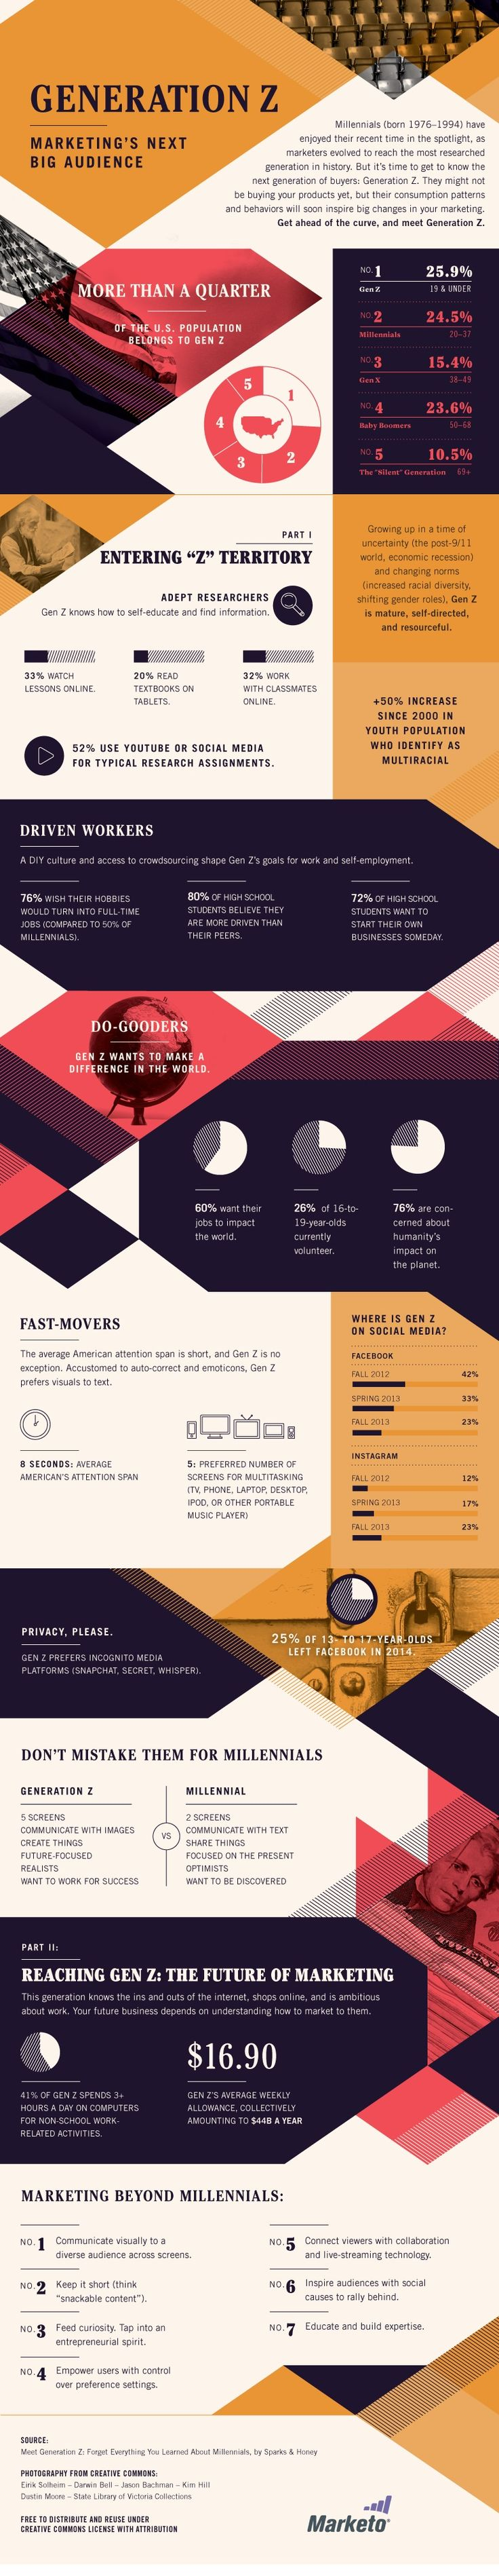 Customer Behavior - Get to Know Generation Z: Marketing's Next Big Audience [Infographic] : MarketingProfs Article